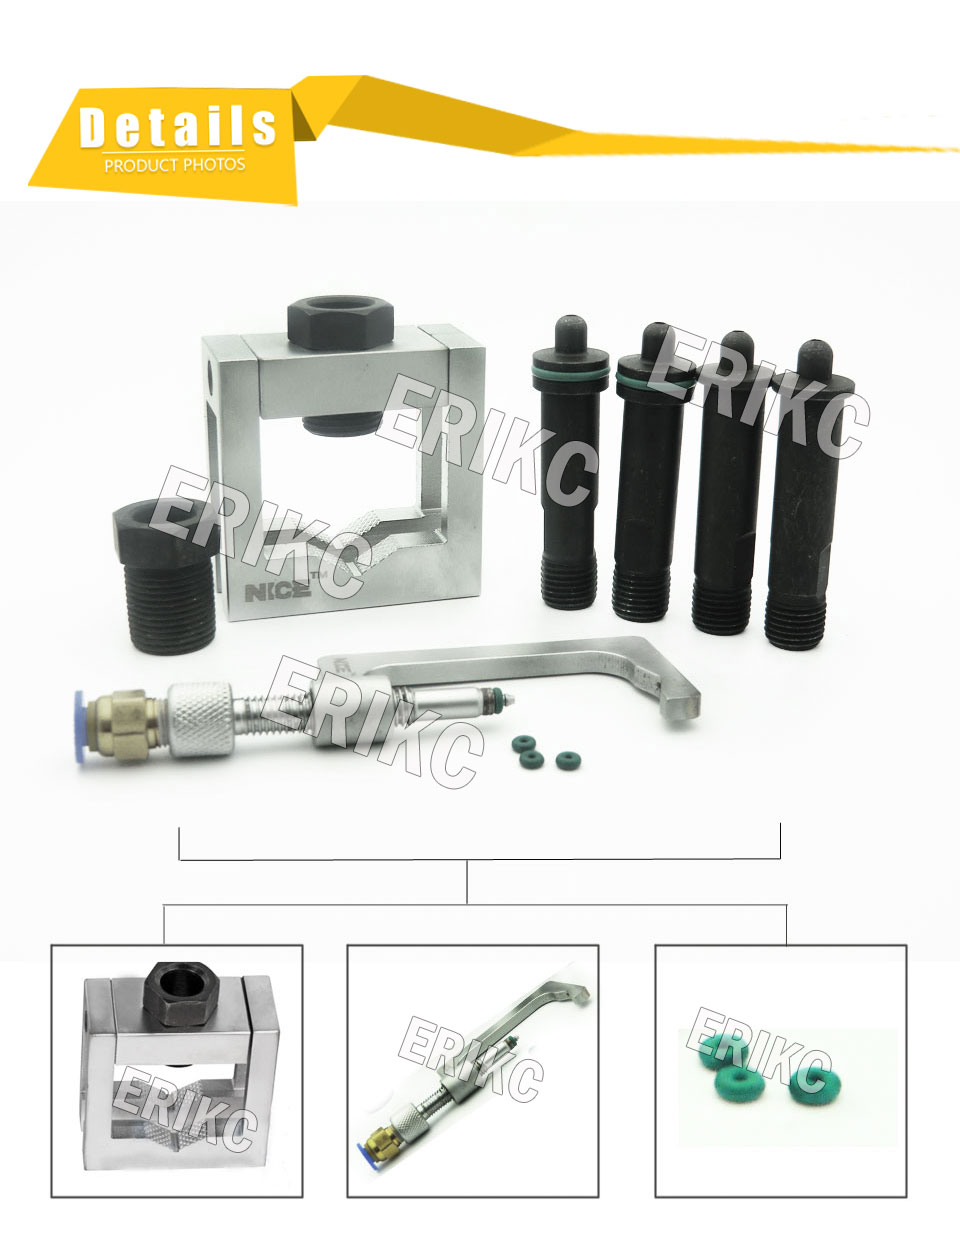 E1024004 auto fuel dispenser Universal Grippers, denso fuel injector Oil-Return Devices,diesel fuel injector Grippers